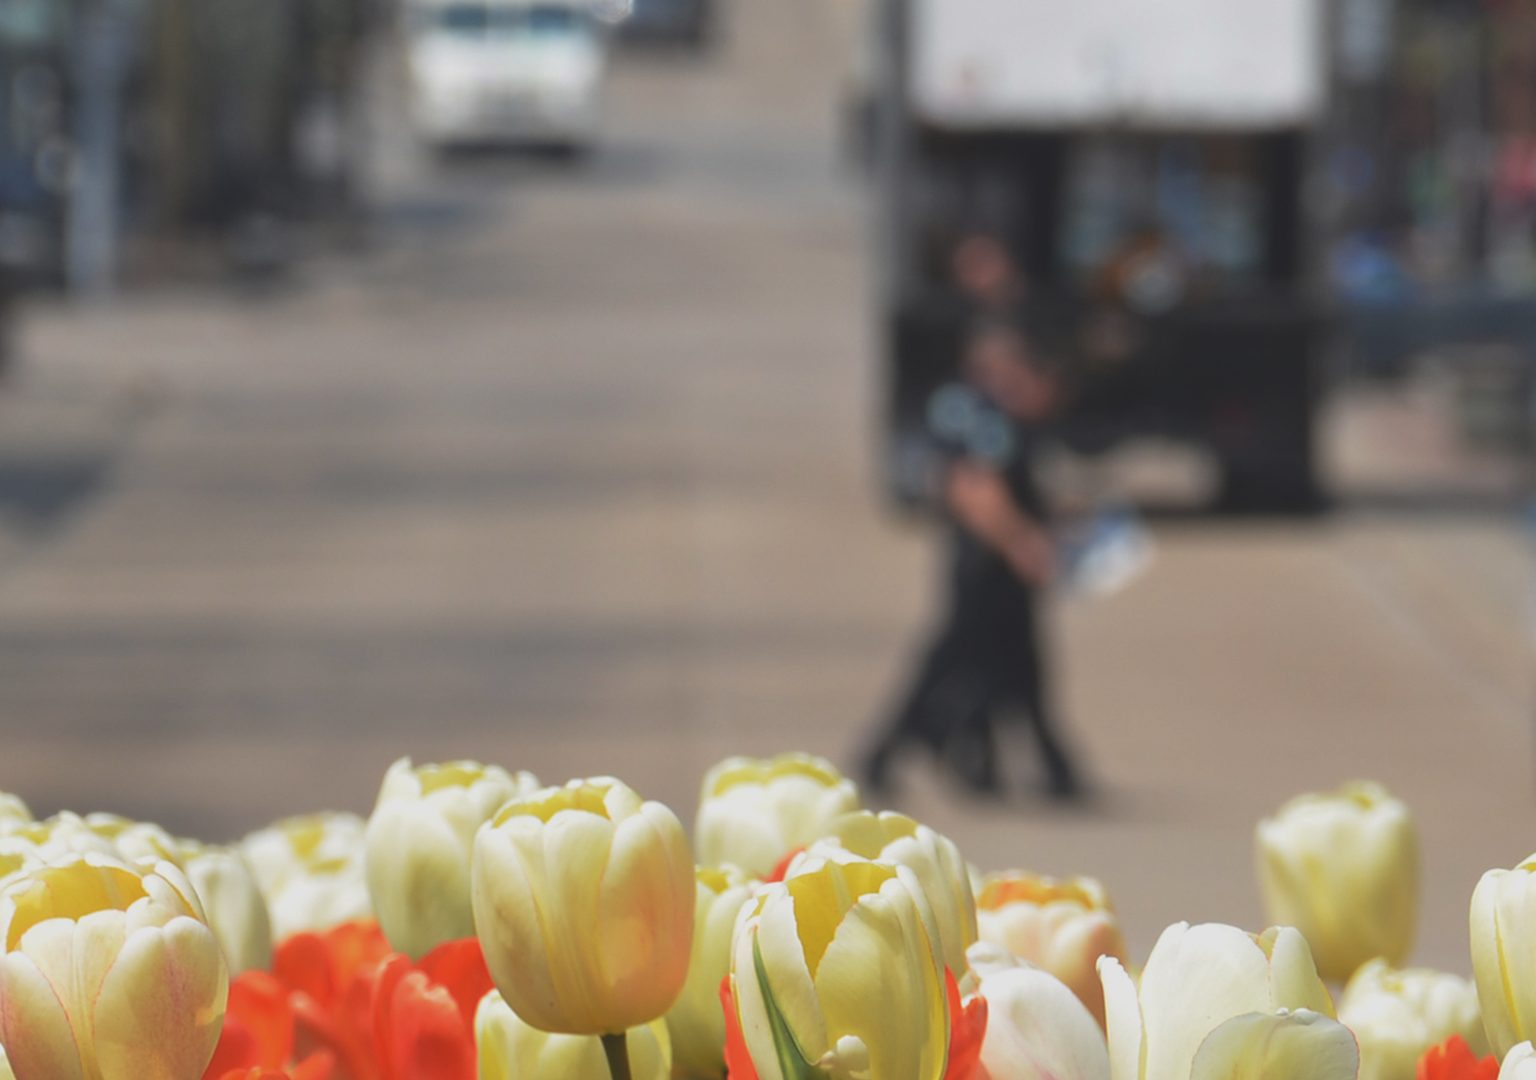 Cluster of tulips in the foreground with a view of State Street in the background